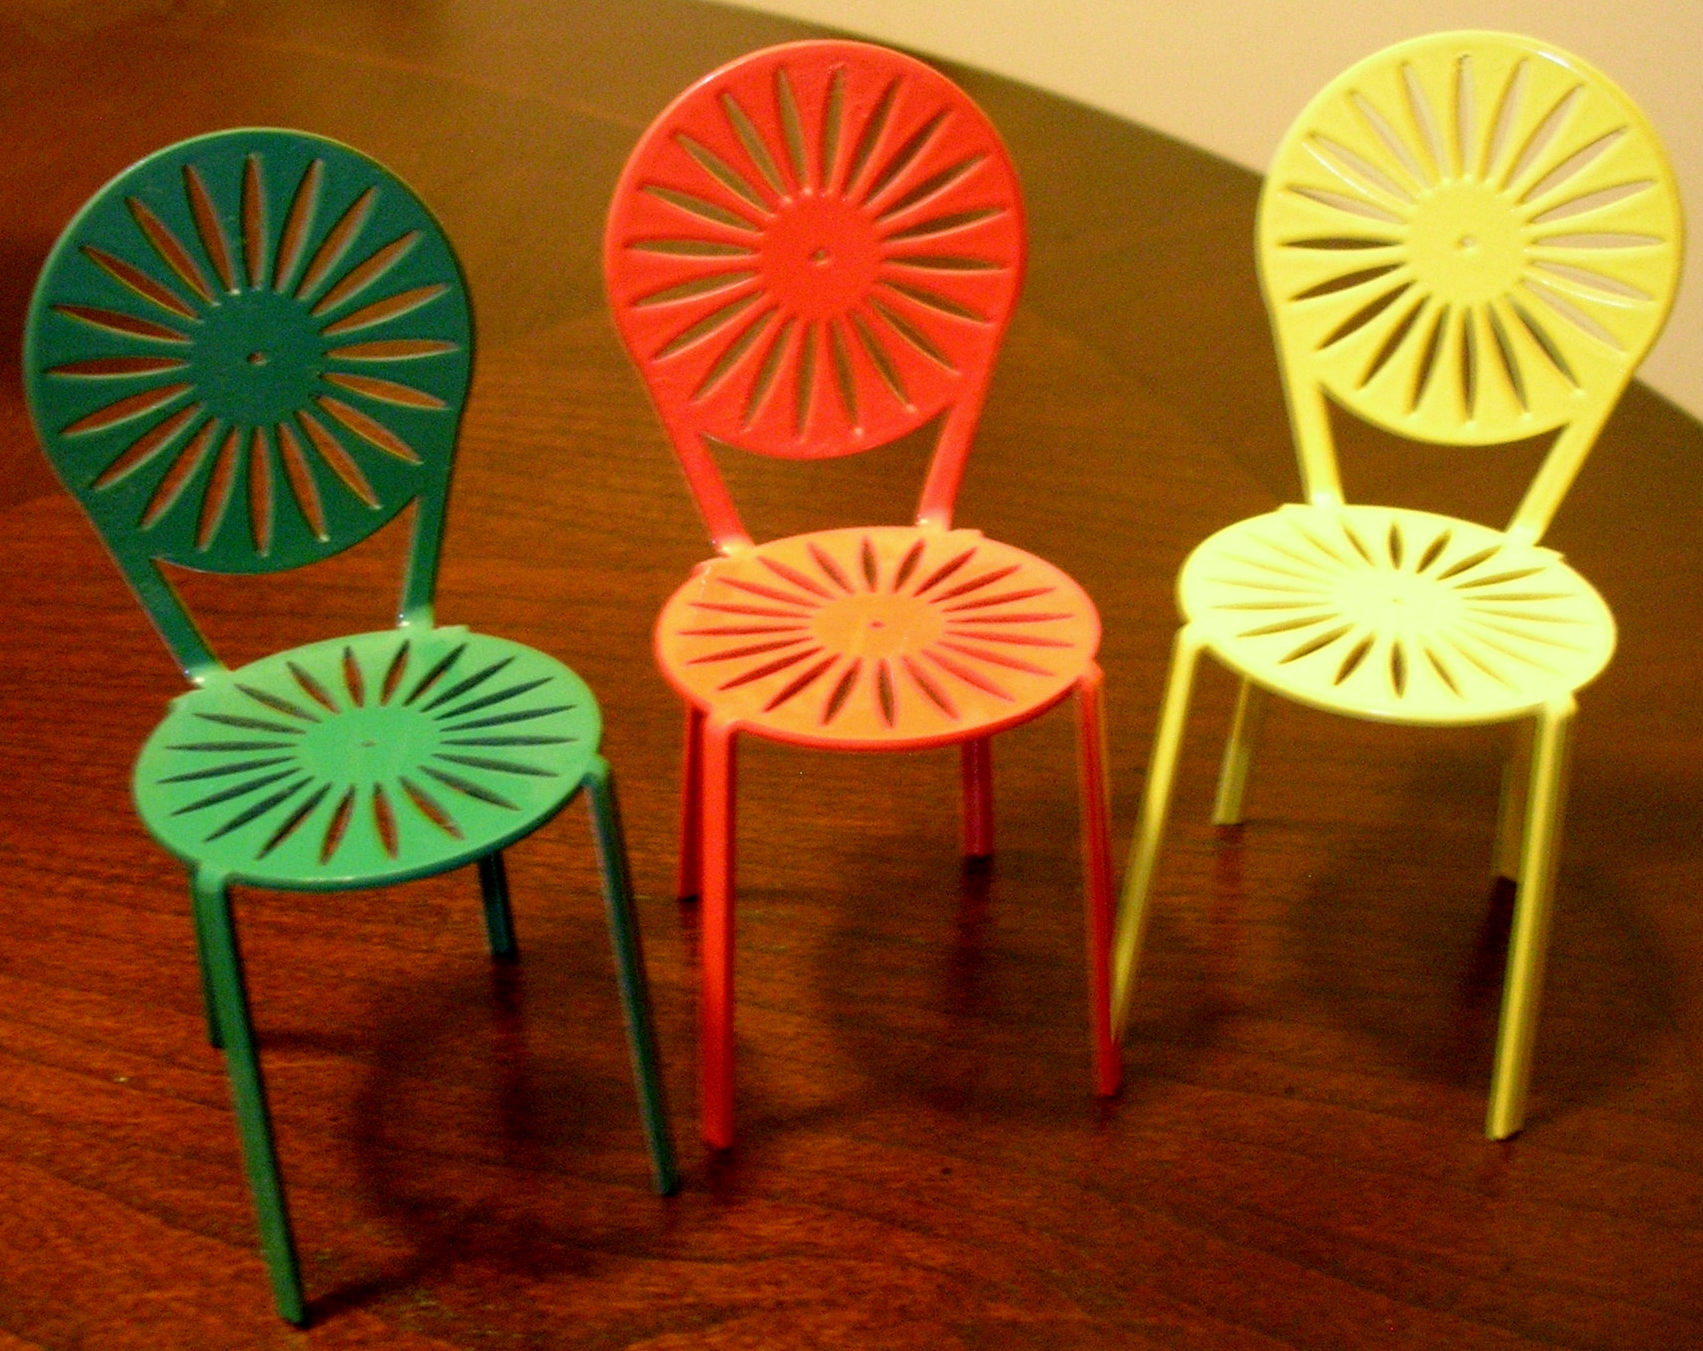 ... every Madisonian and every student or alum of the University of Wisconsinu2014Madison will recognize the design on these three matching miniature chairs. & Allison in Madison: Terrace chairs | Allison M.